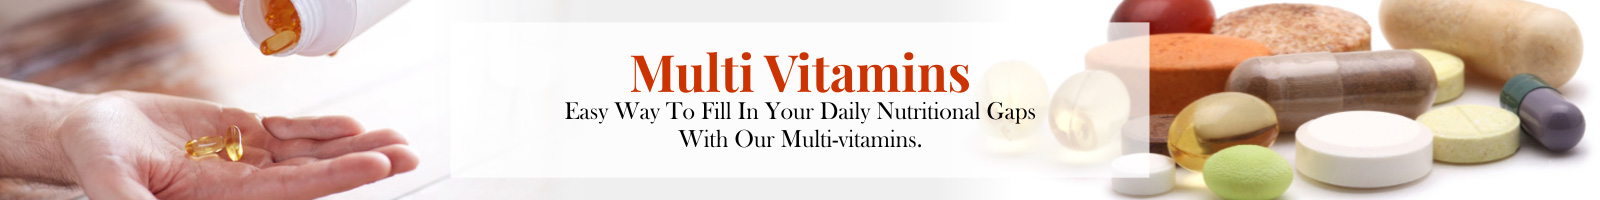 Daily Multi Vitamins